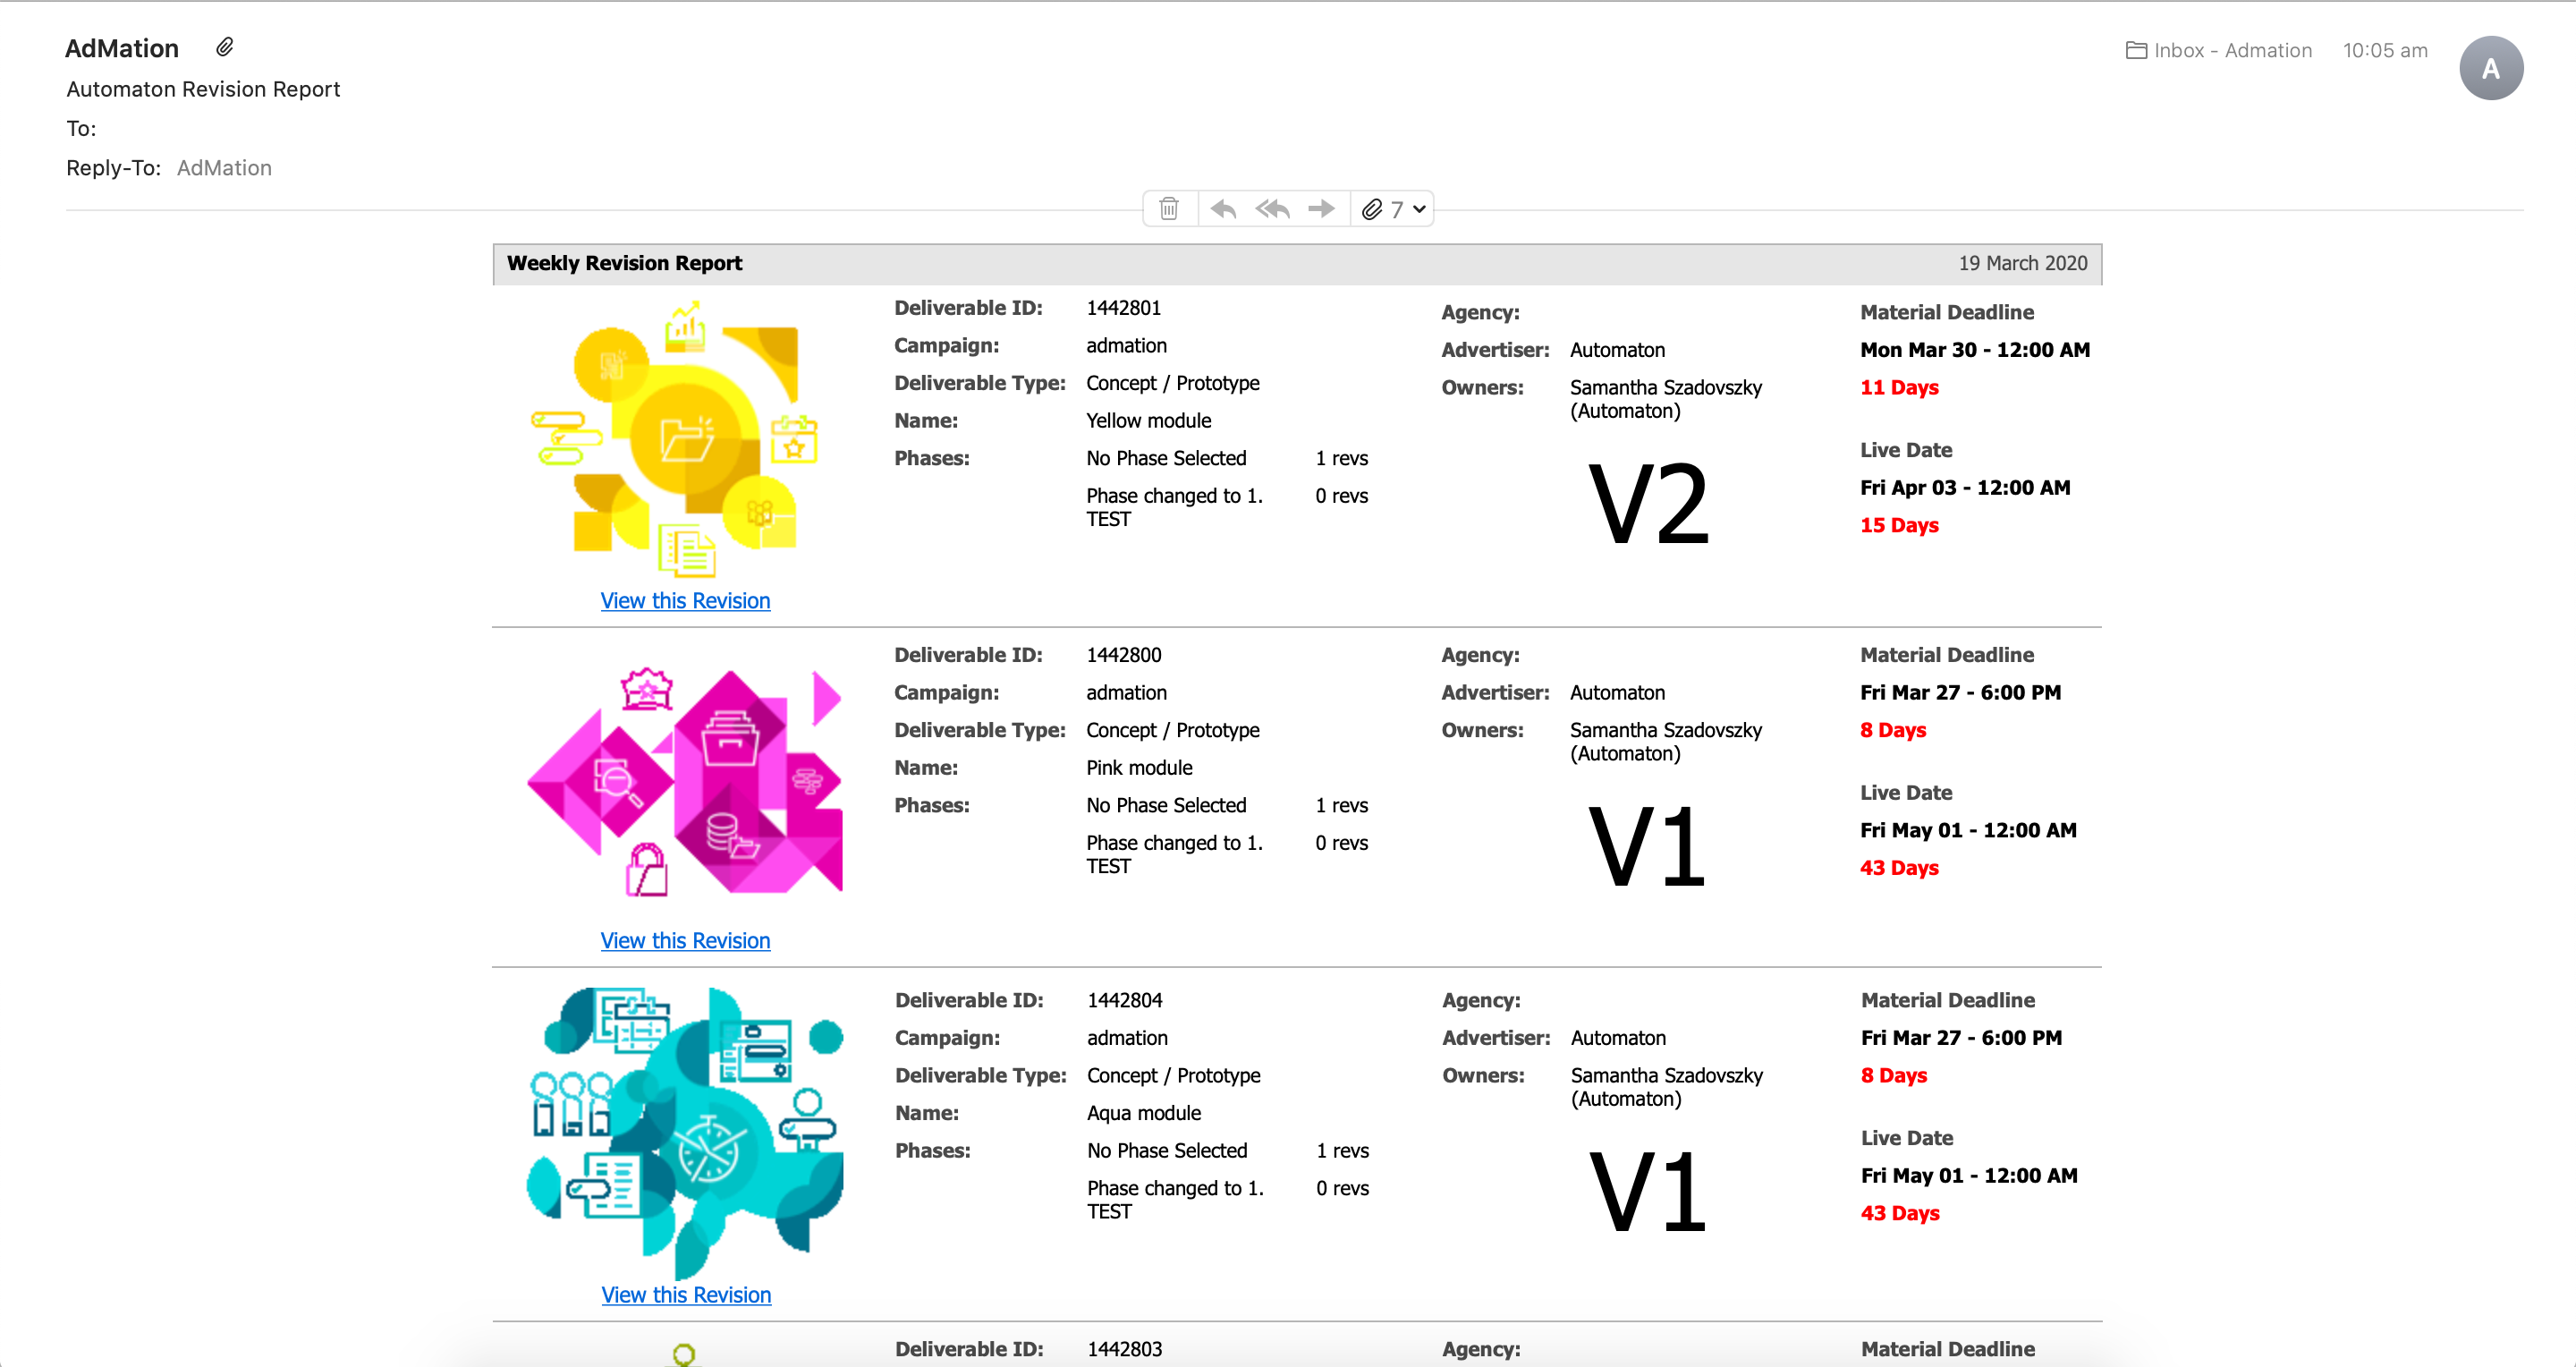 A daily or weekly revision report helps management keep on top of revision counts in a quick snapshot view.